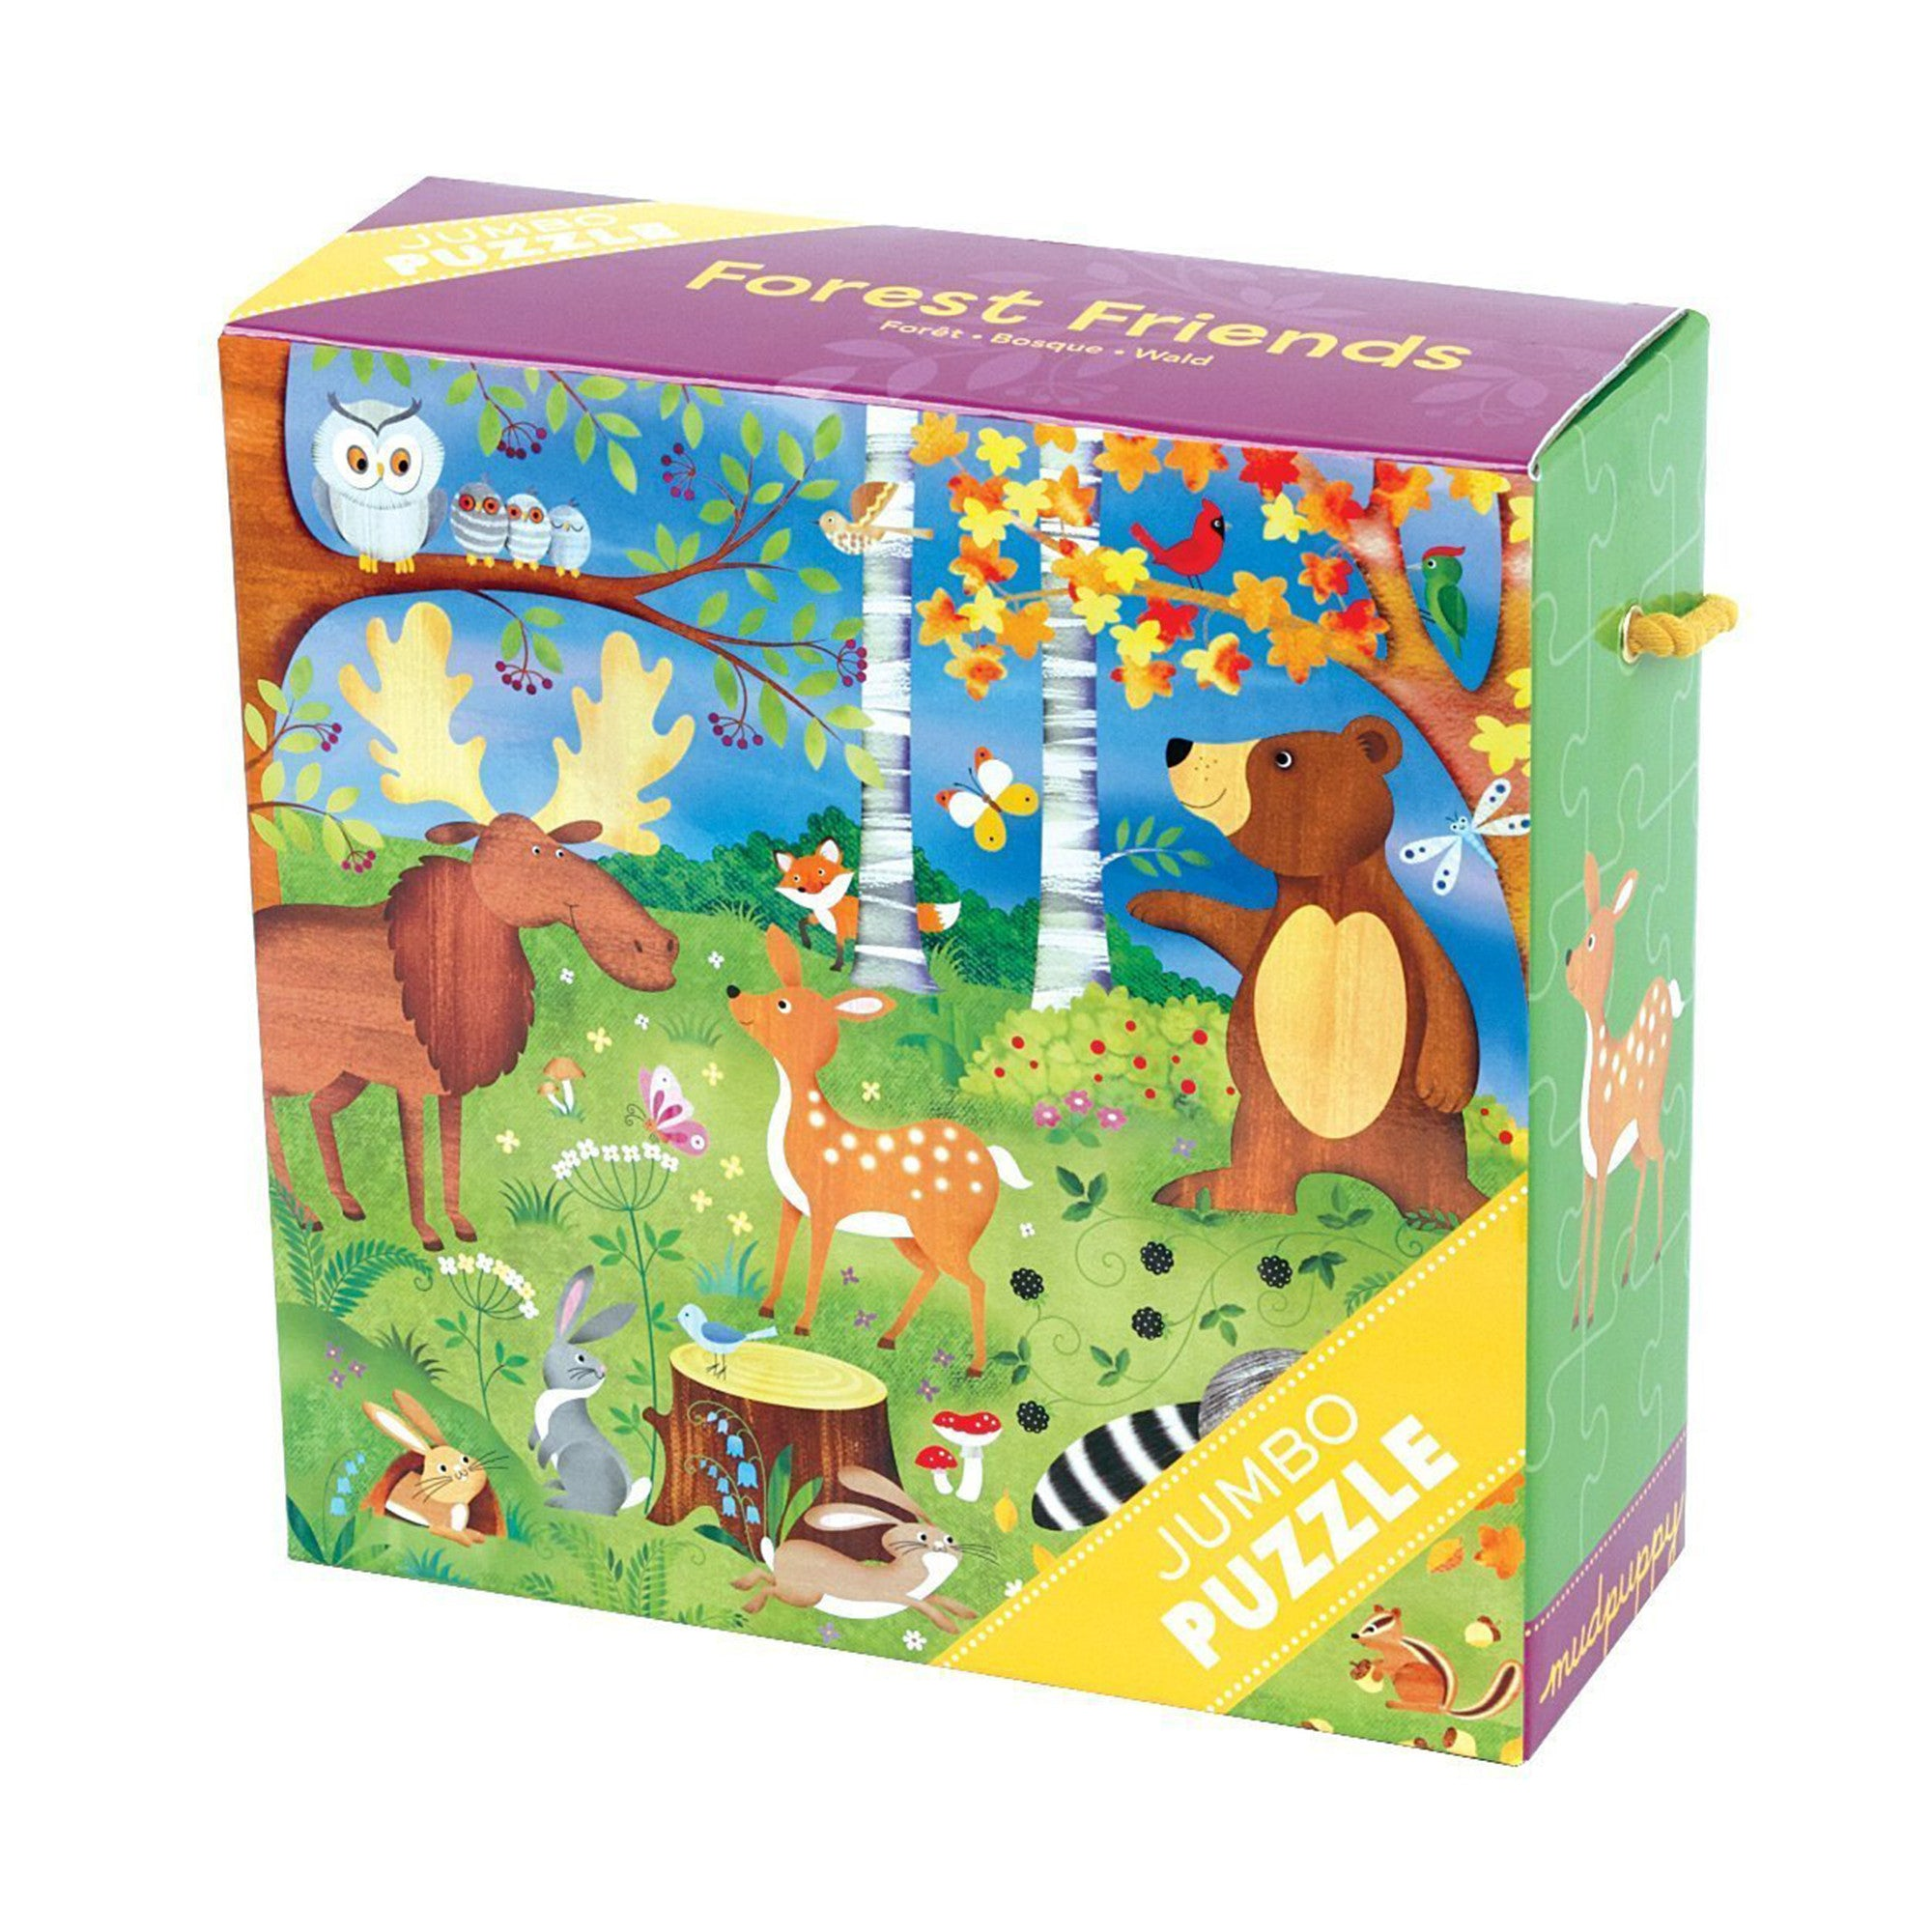 MudPuppy Jumbo Puzzle 25 Piece Mudpuppy Puzzles Forest Friends at Little Earth Nest Eco Shop